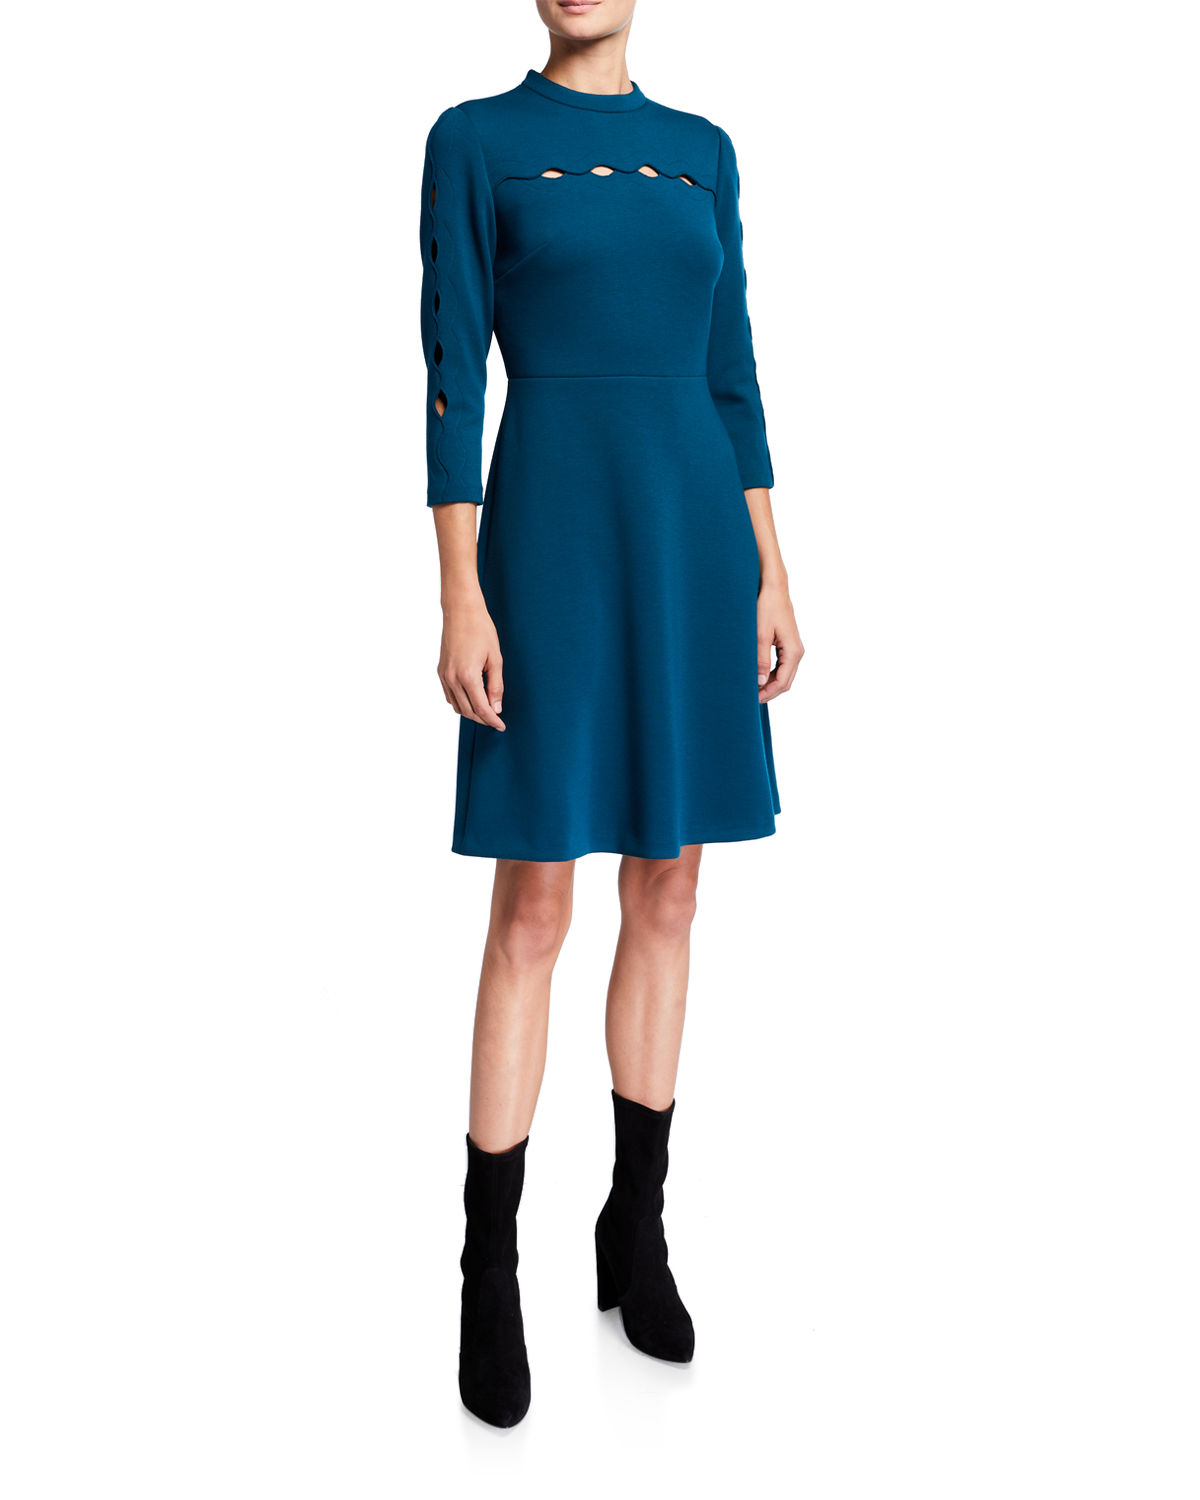 Elie Tahari Dresses SENNA 3/4-SLEEVE A-LINE DRESS WITH CUTOUT DETAILS